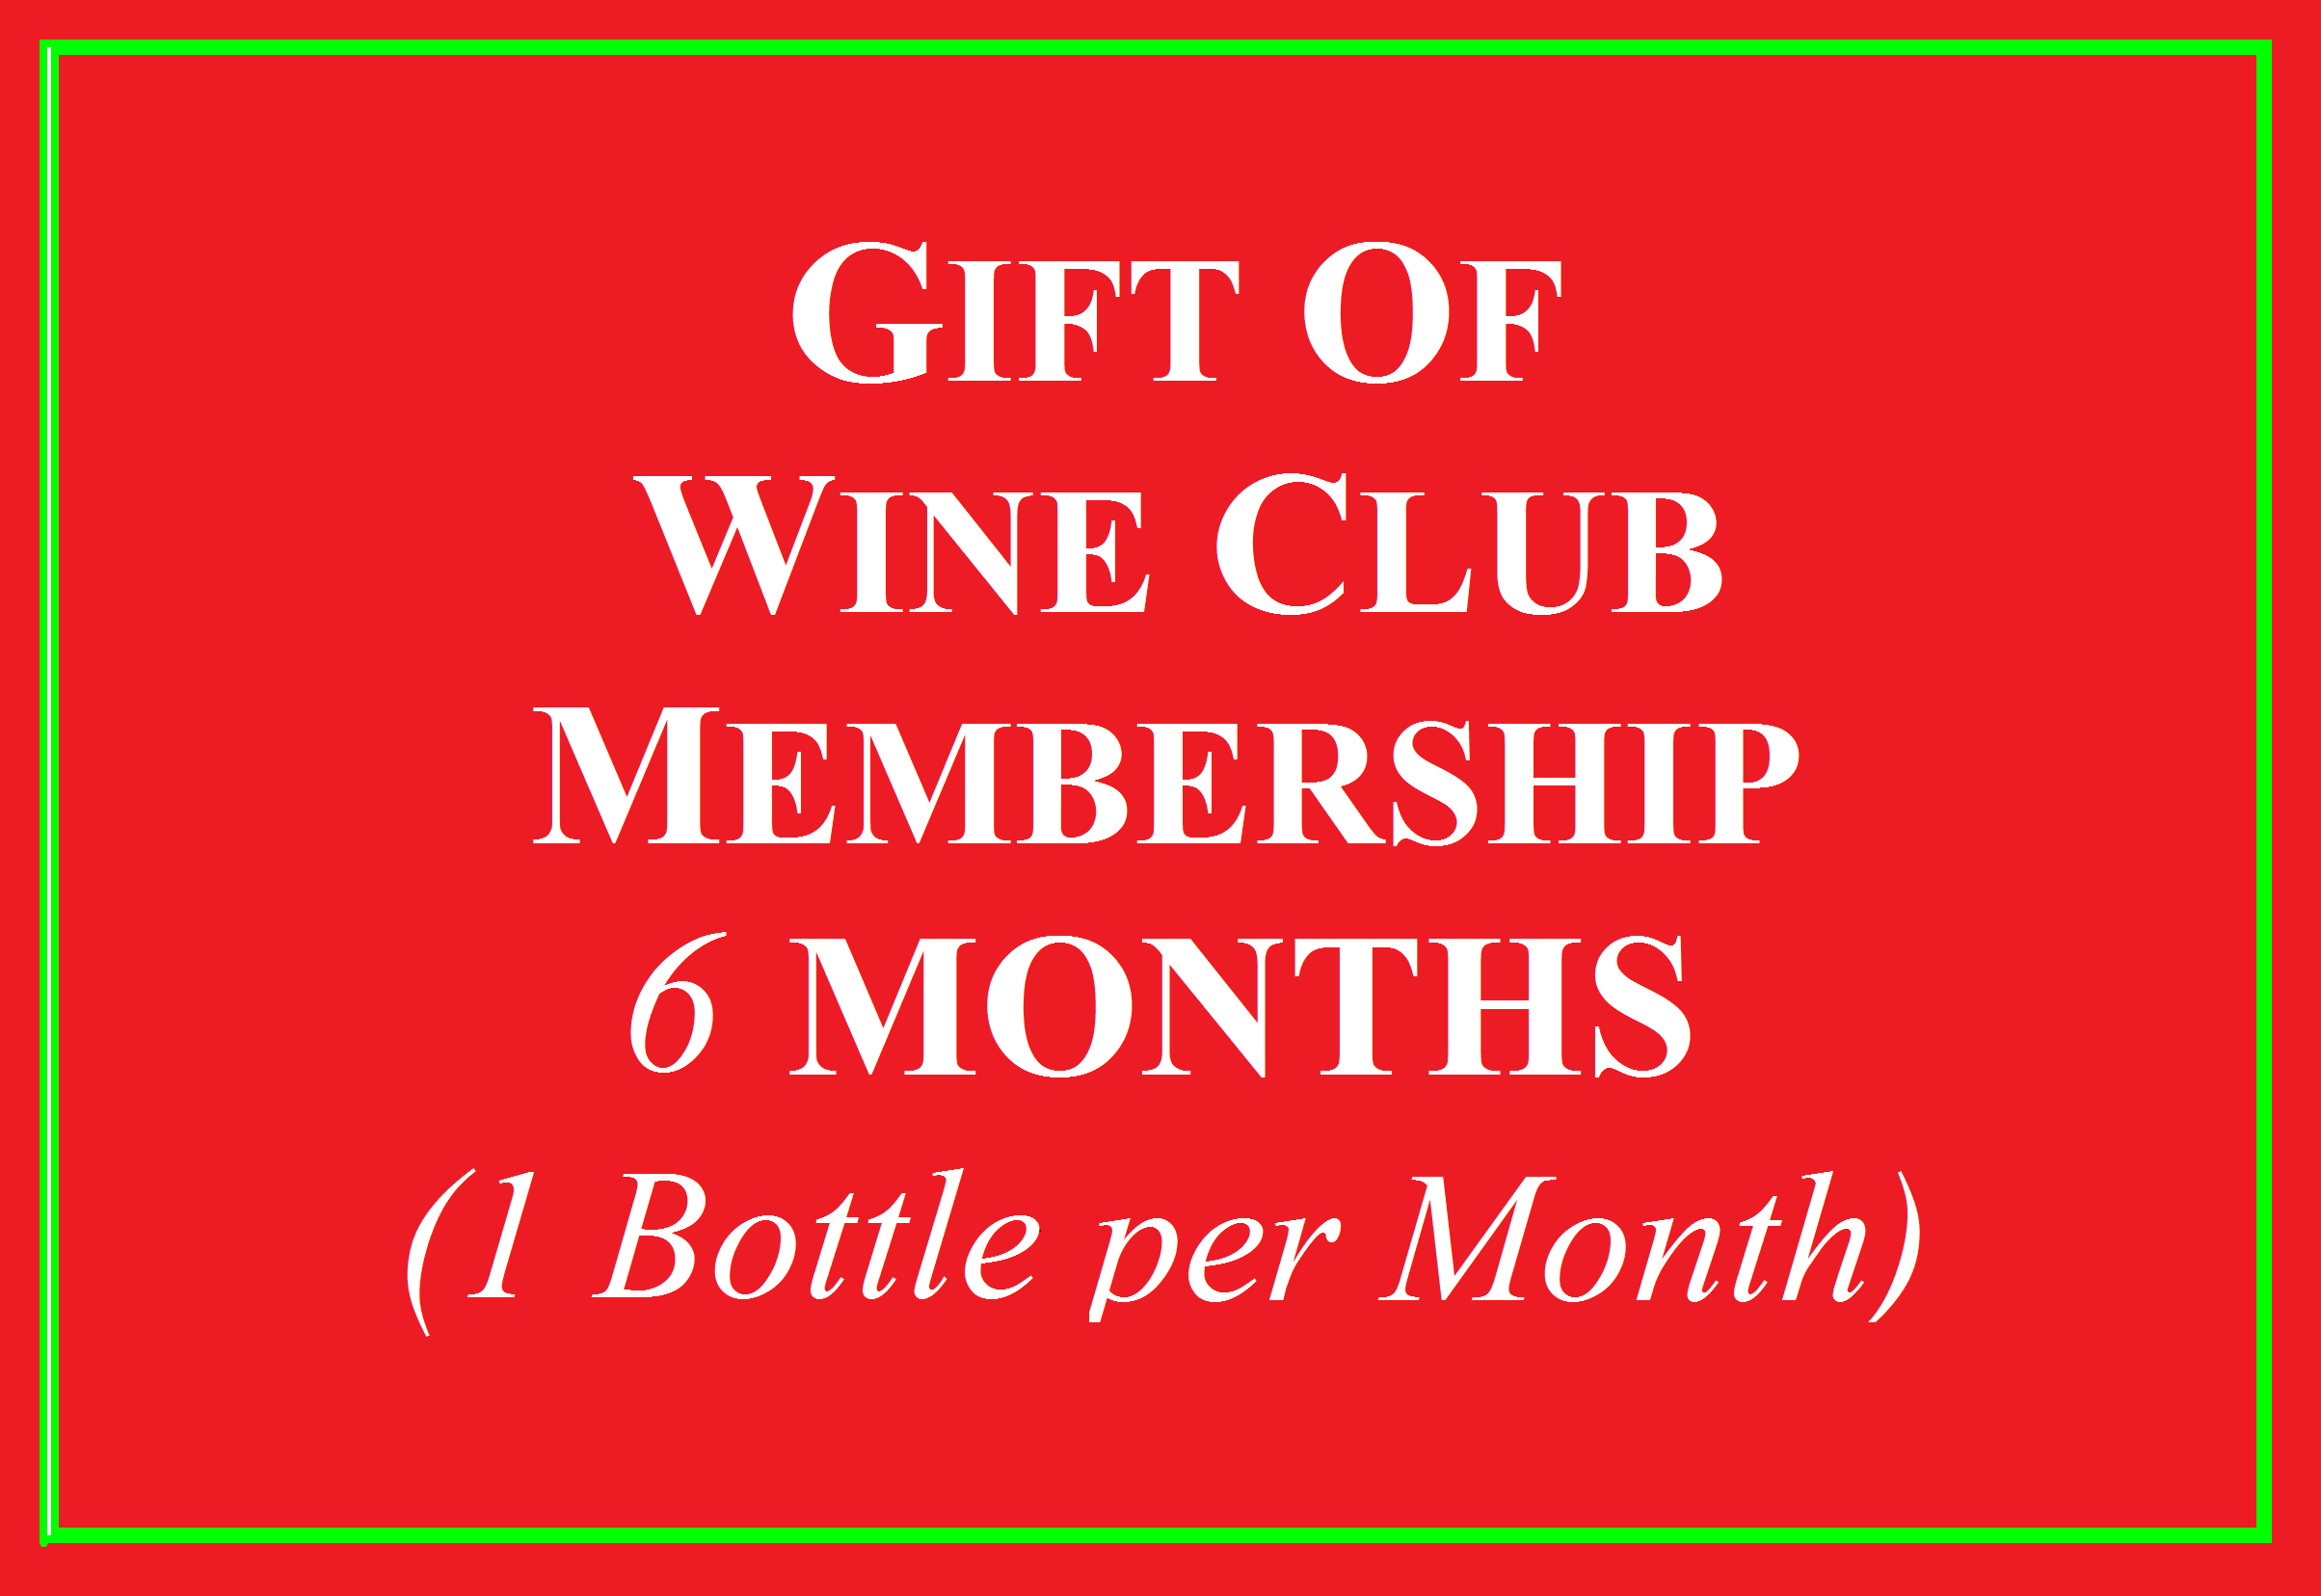 Wine Club Gift for 6 Months 1 Bottle Photo